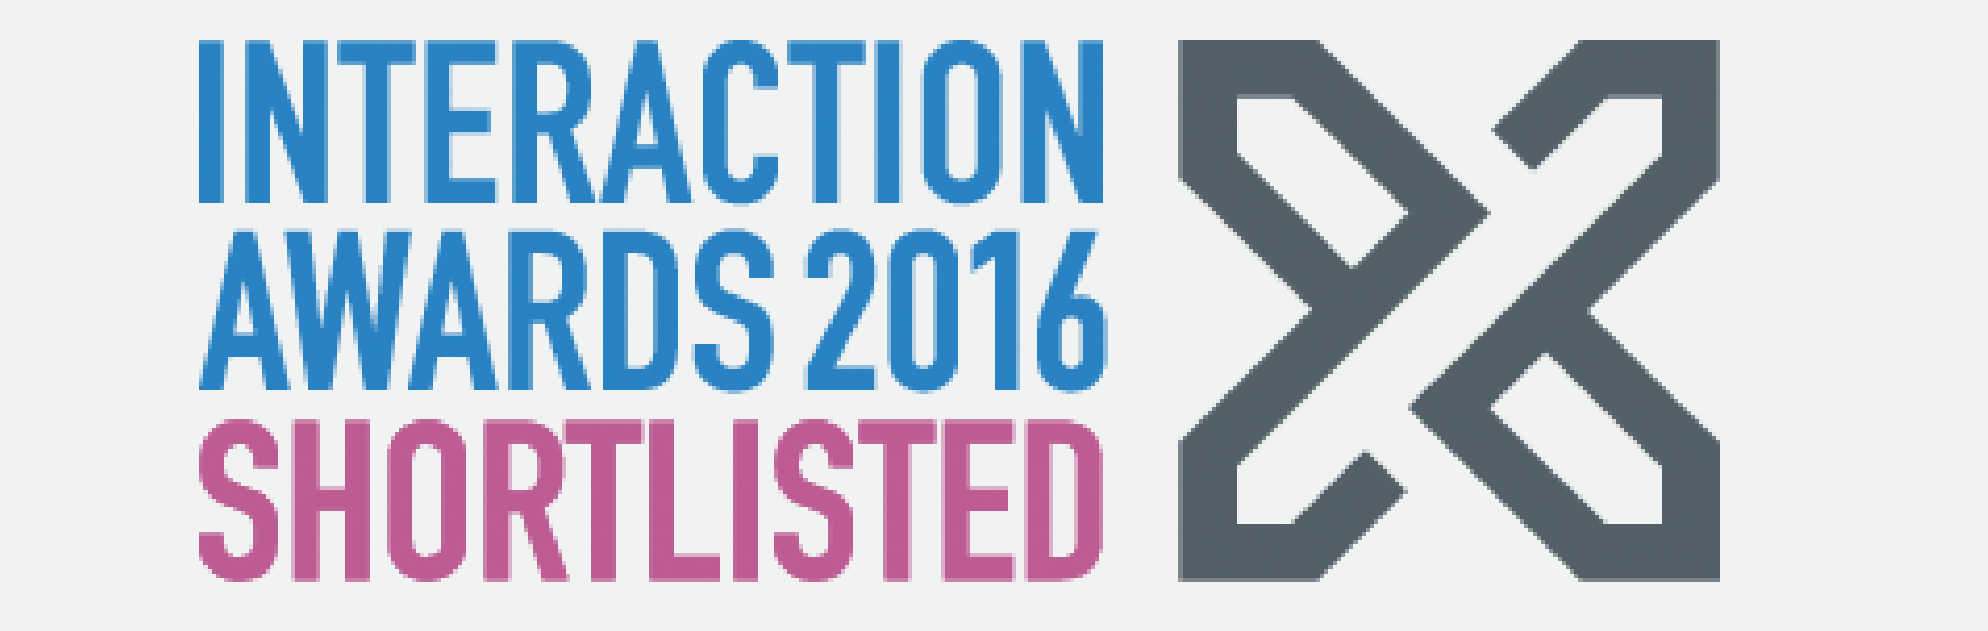 2016 IxDA Awards Shortlist for 'Mygreat' in the Connecting category.